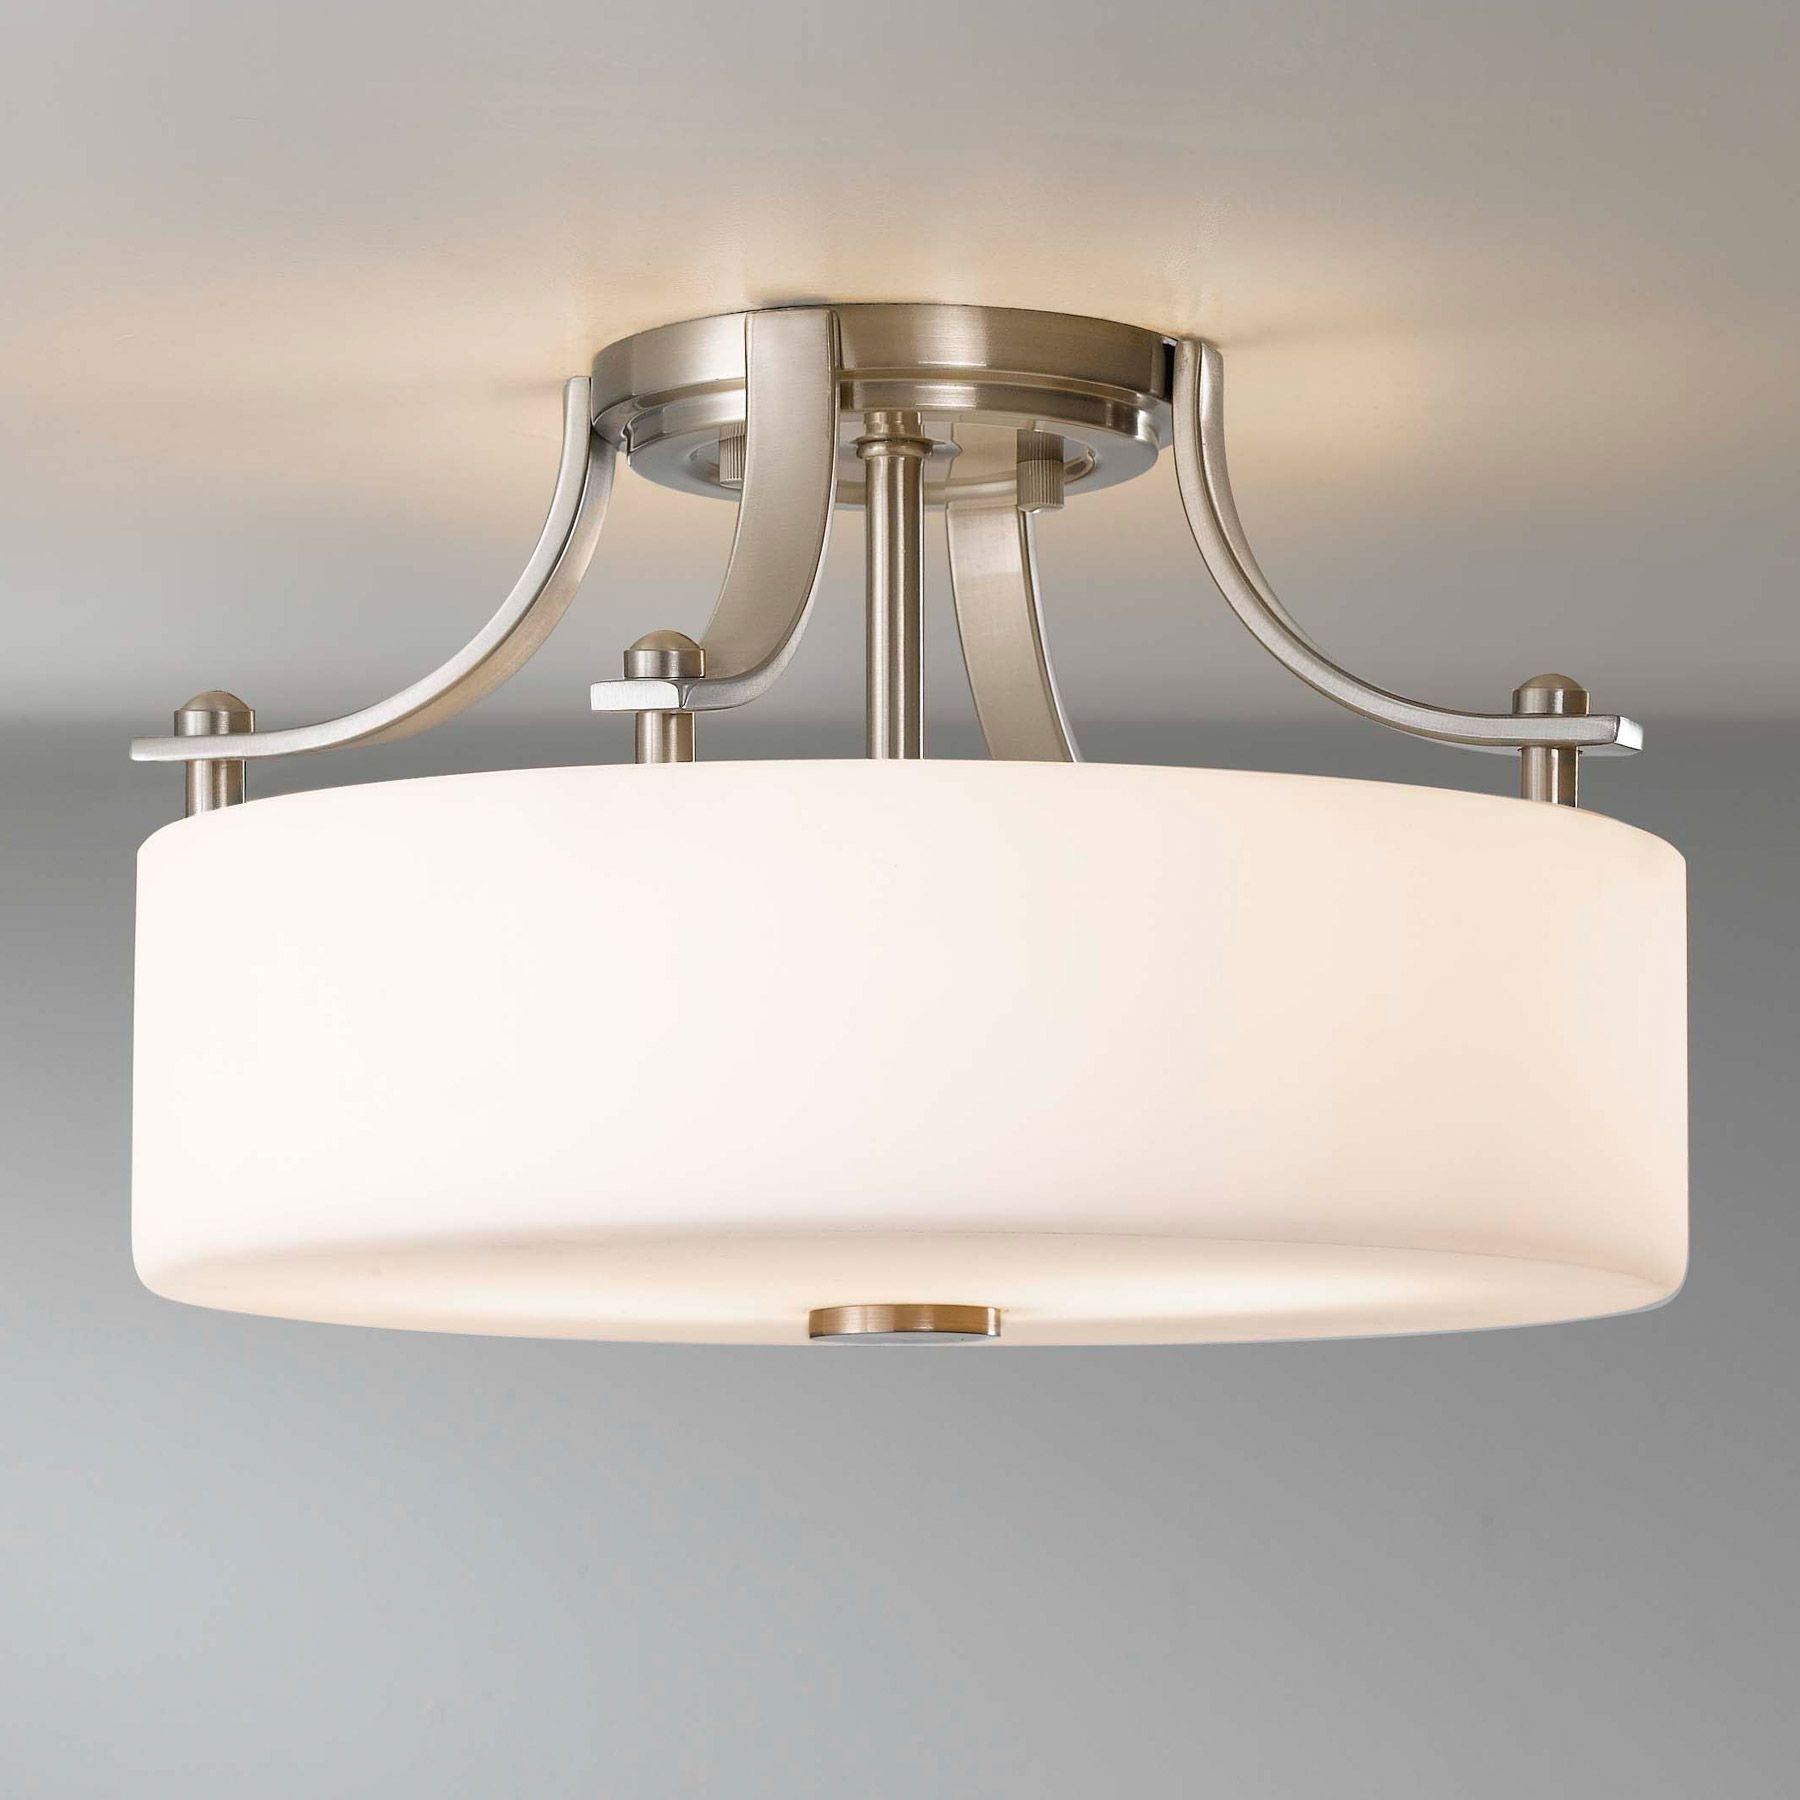 White Flushmount Light Fixture Bathroom Ceiling Light Kitchen